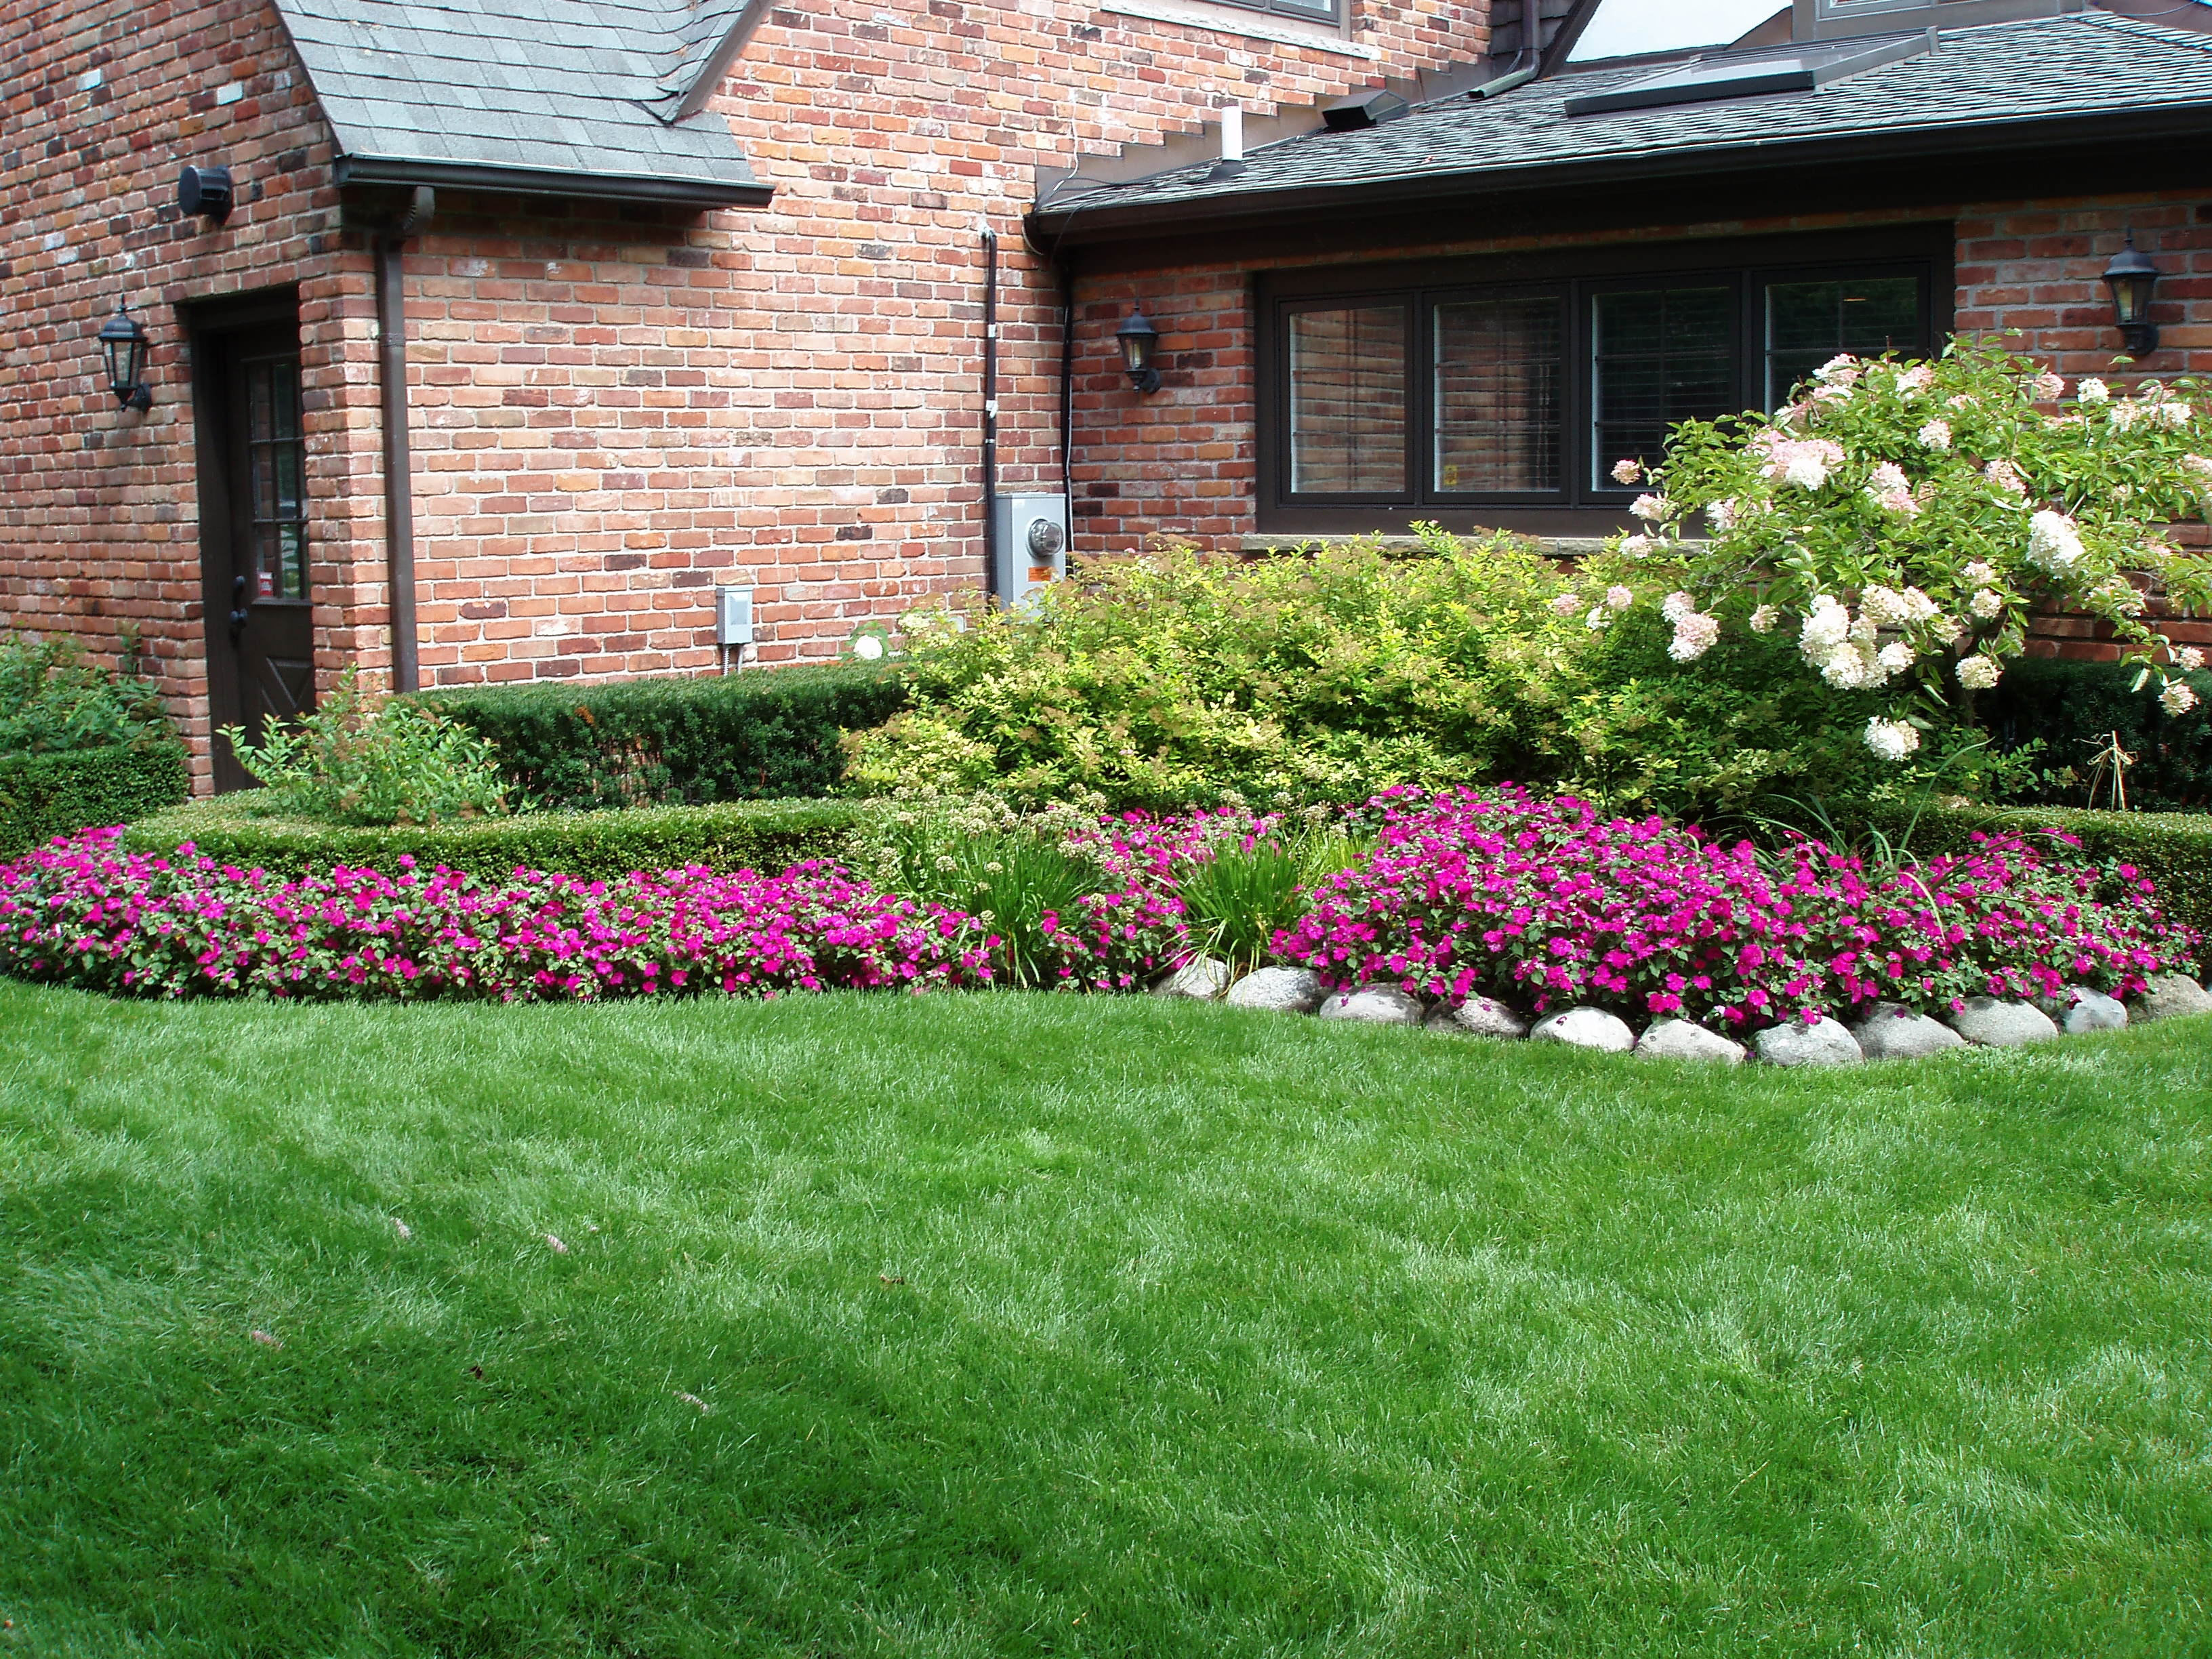 Landscaping total lawn care inc full lawn maintenance for Great garden design ideas